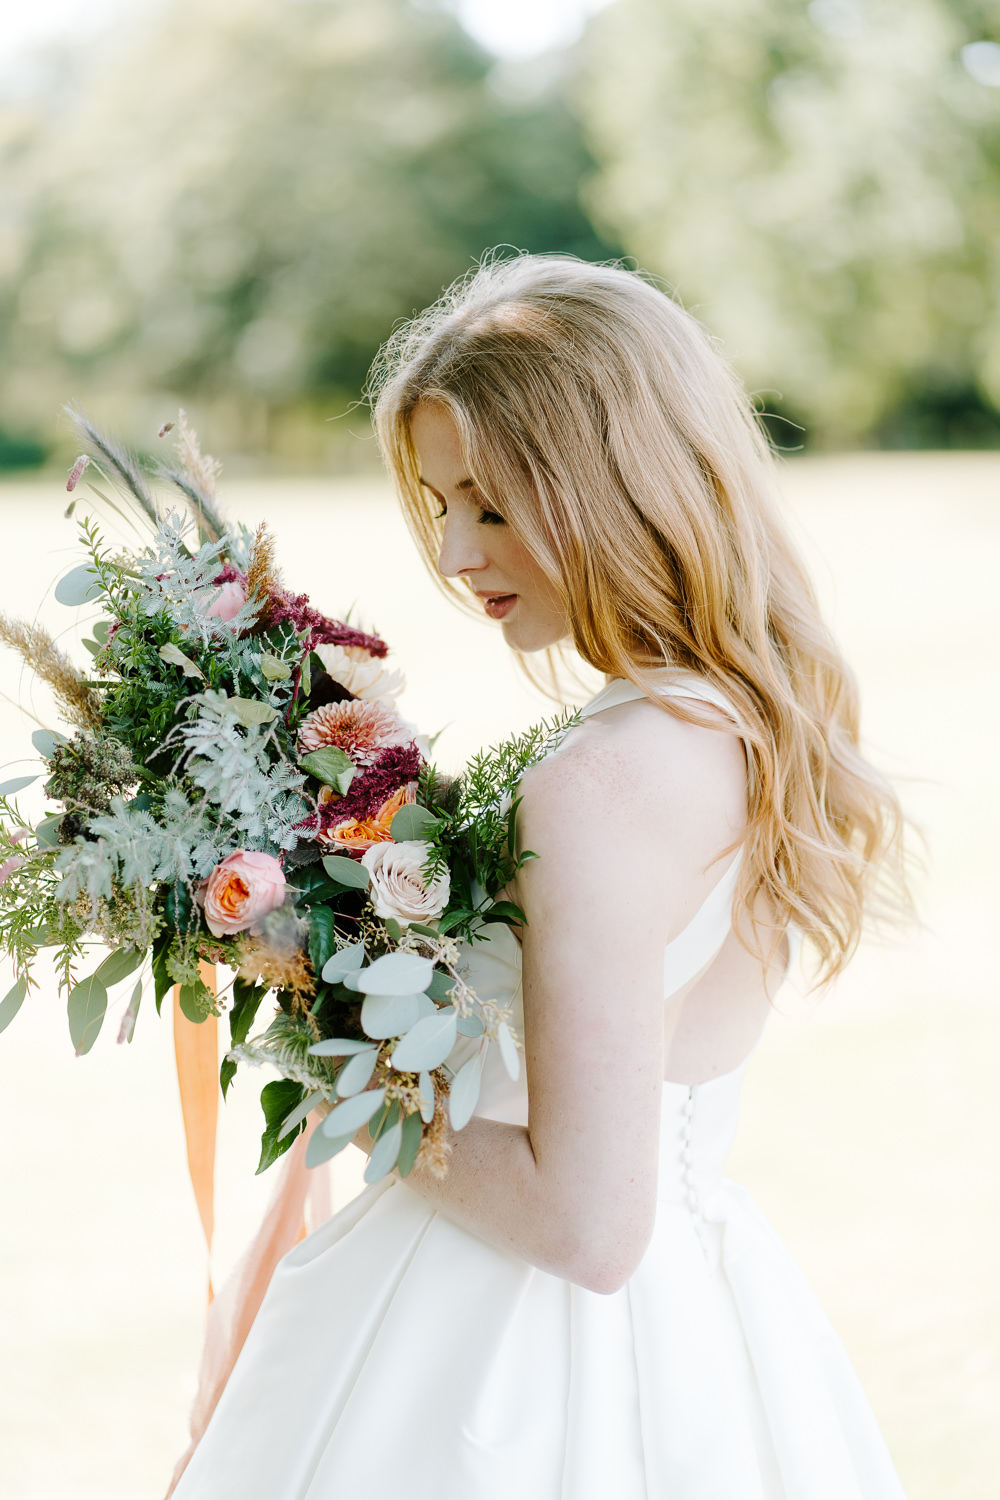 Bride Bridal Bouquet Flowers Eucalyptus Grass Daliah Rose Ribbons Contemporary Wedding Ideas Chloe Ely Photography